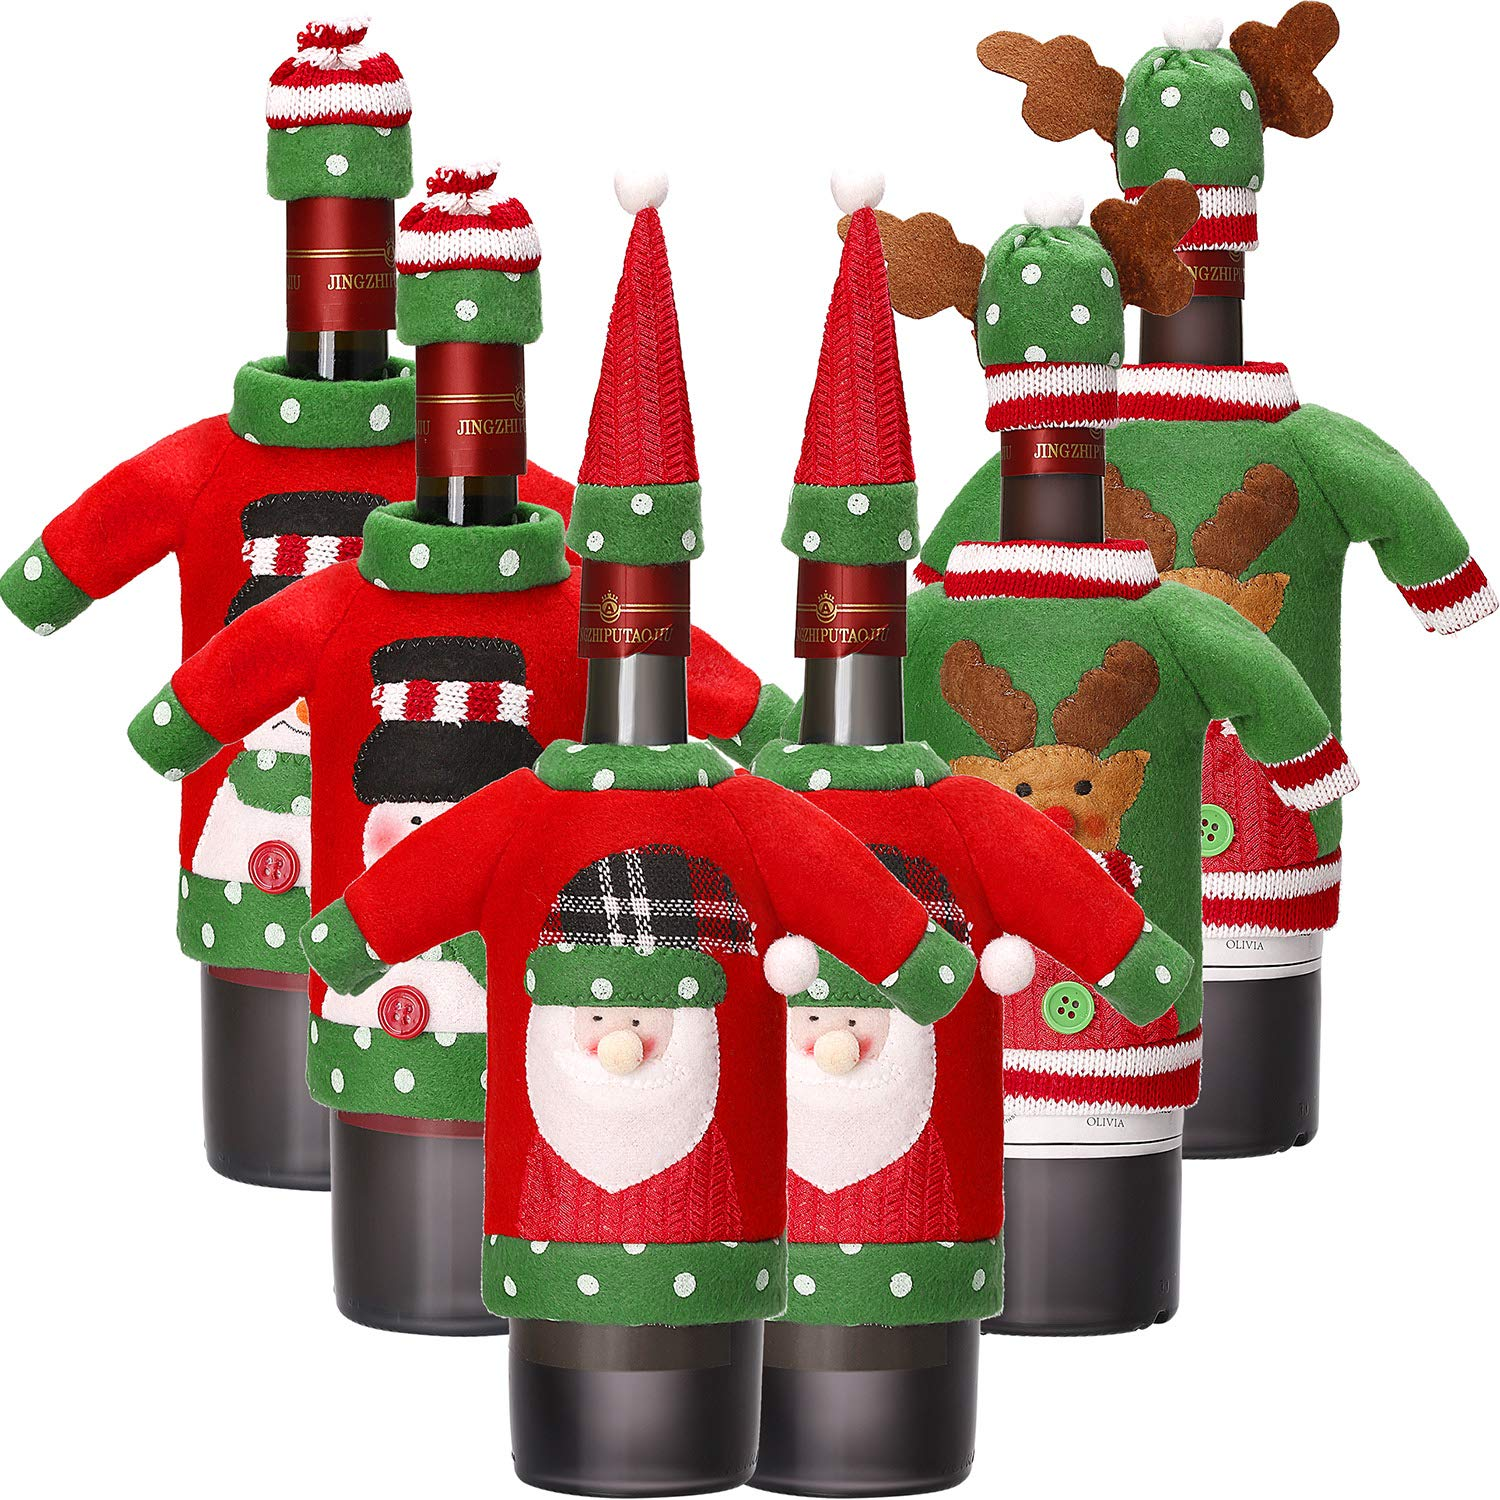 12 Pieces Christmas Wine Bottle Cover Knit Sweater Wine Bottle Dress Santa Reindeer Snowman Wine Bottle Cover for Christmas Decorations Christmas Sweater Party Decorations Boao